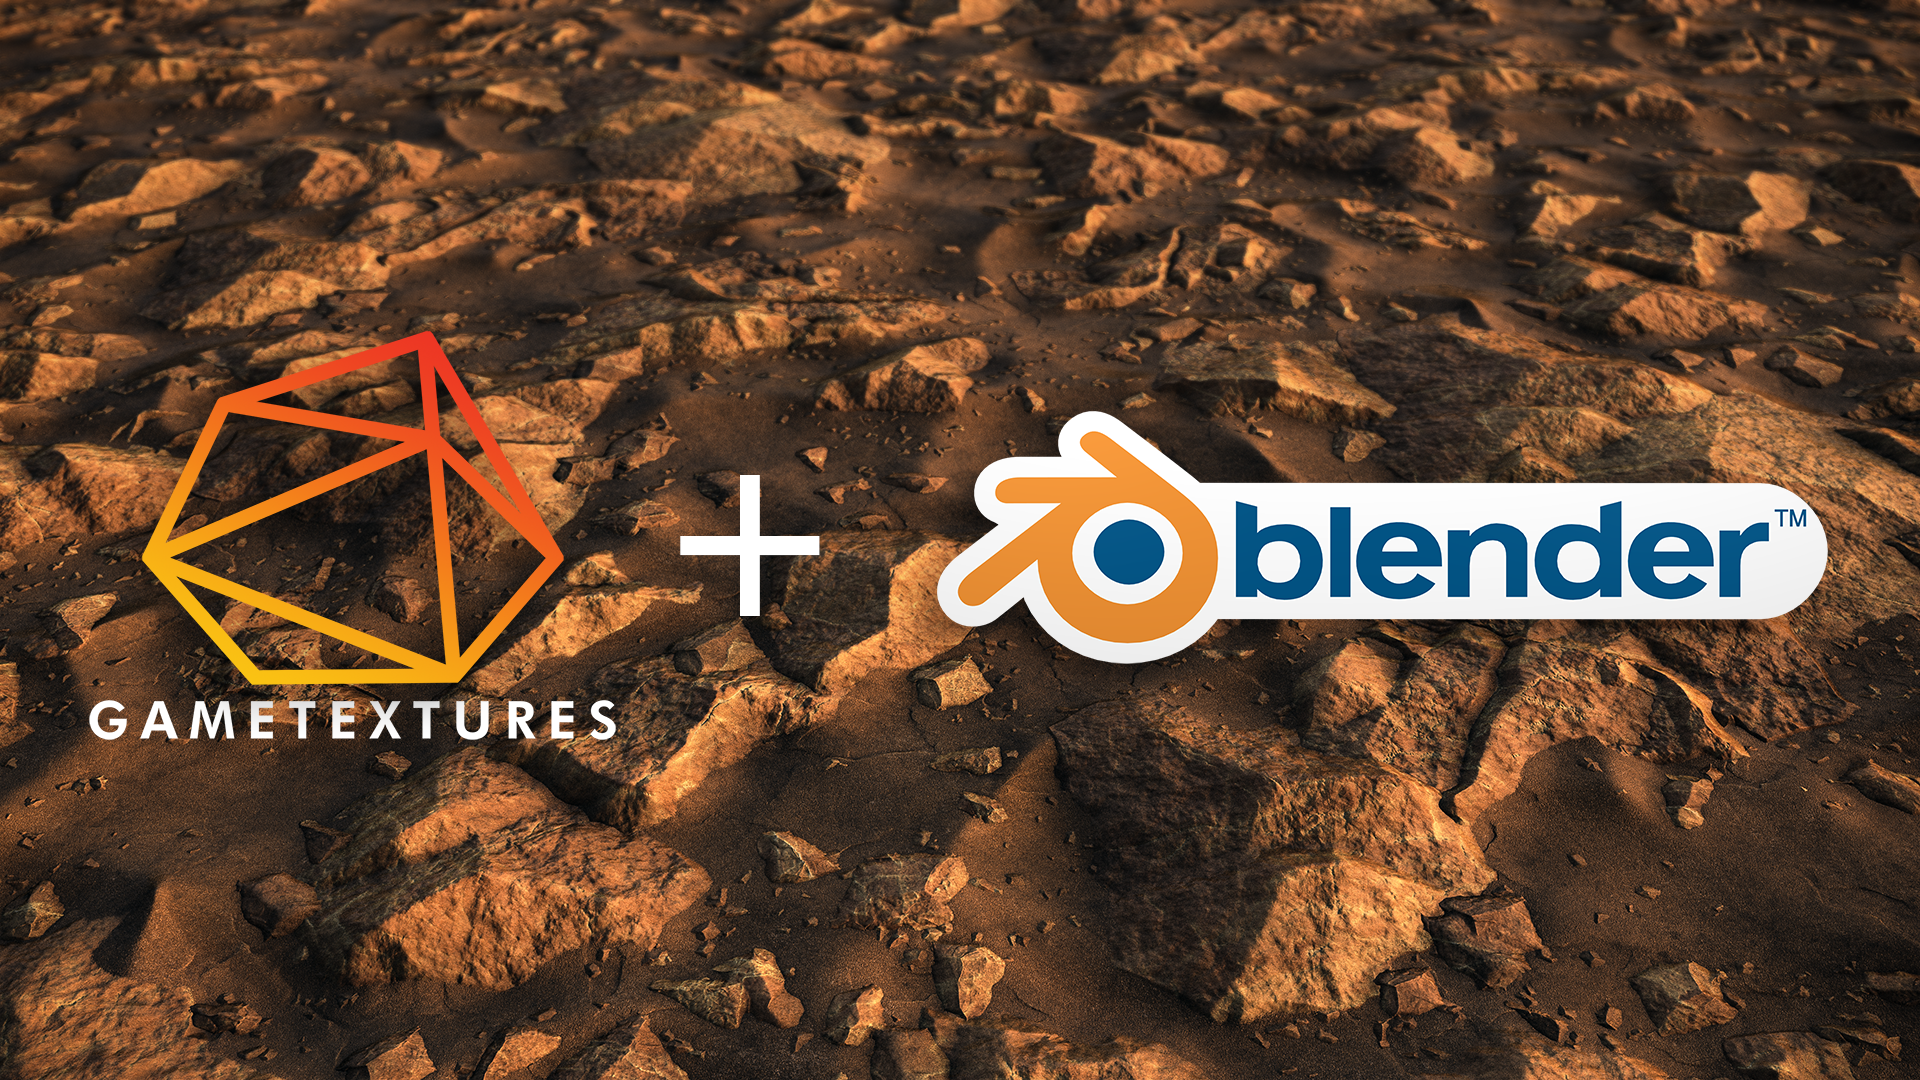 Introducing The Largest Library of Blender-Ready Materials Ever Created